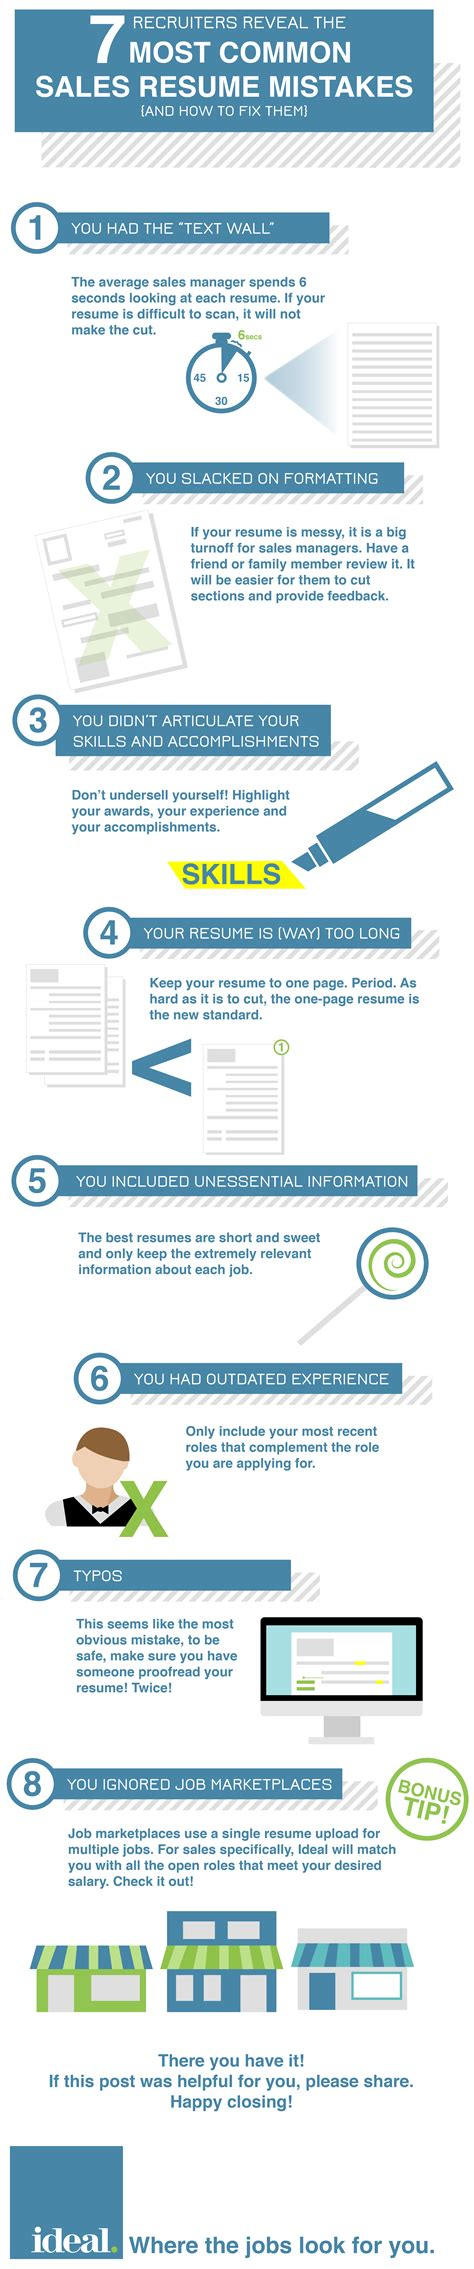 7 Resume Mistakes by Recruiters Reveal The 7 Most Common Sales Resume Mistakes